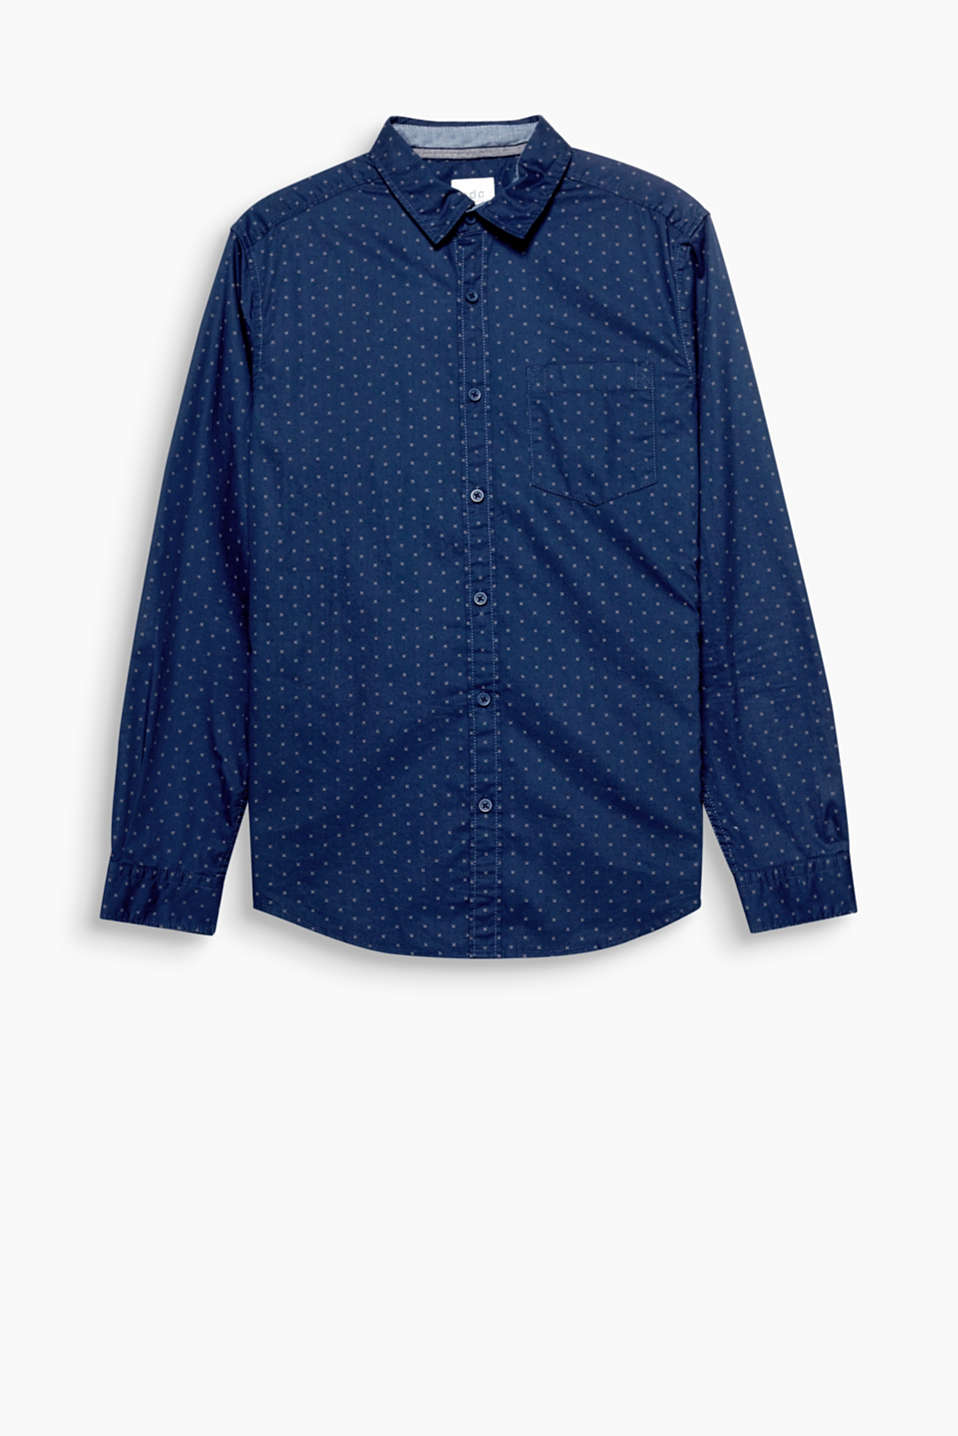 The shirt is made of smooth twill with a denim-lined collar, showing off the fine, minimalist print to perfection!